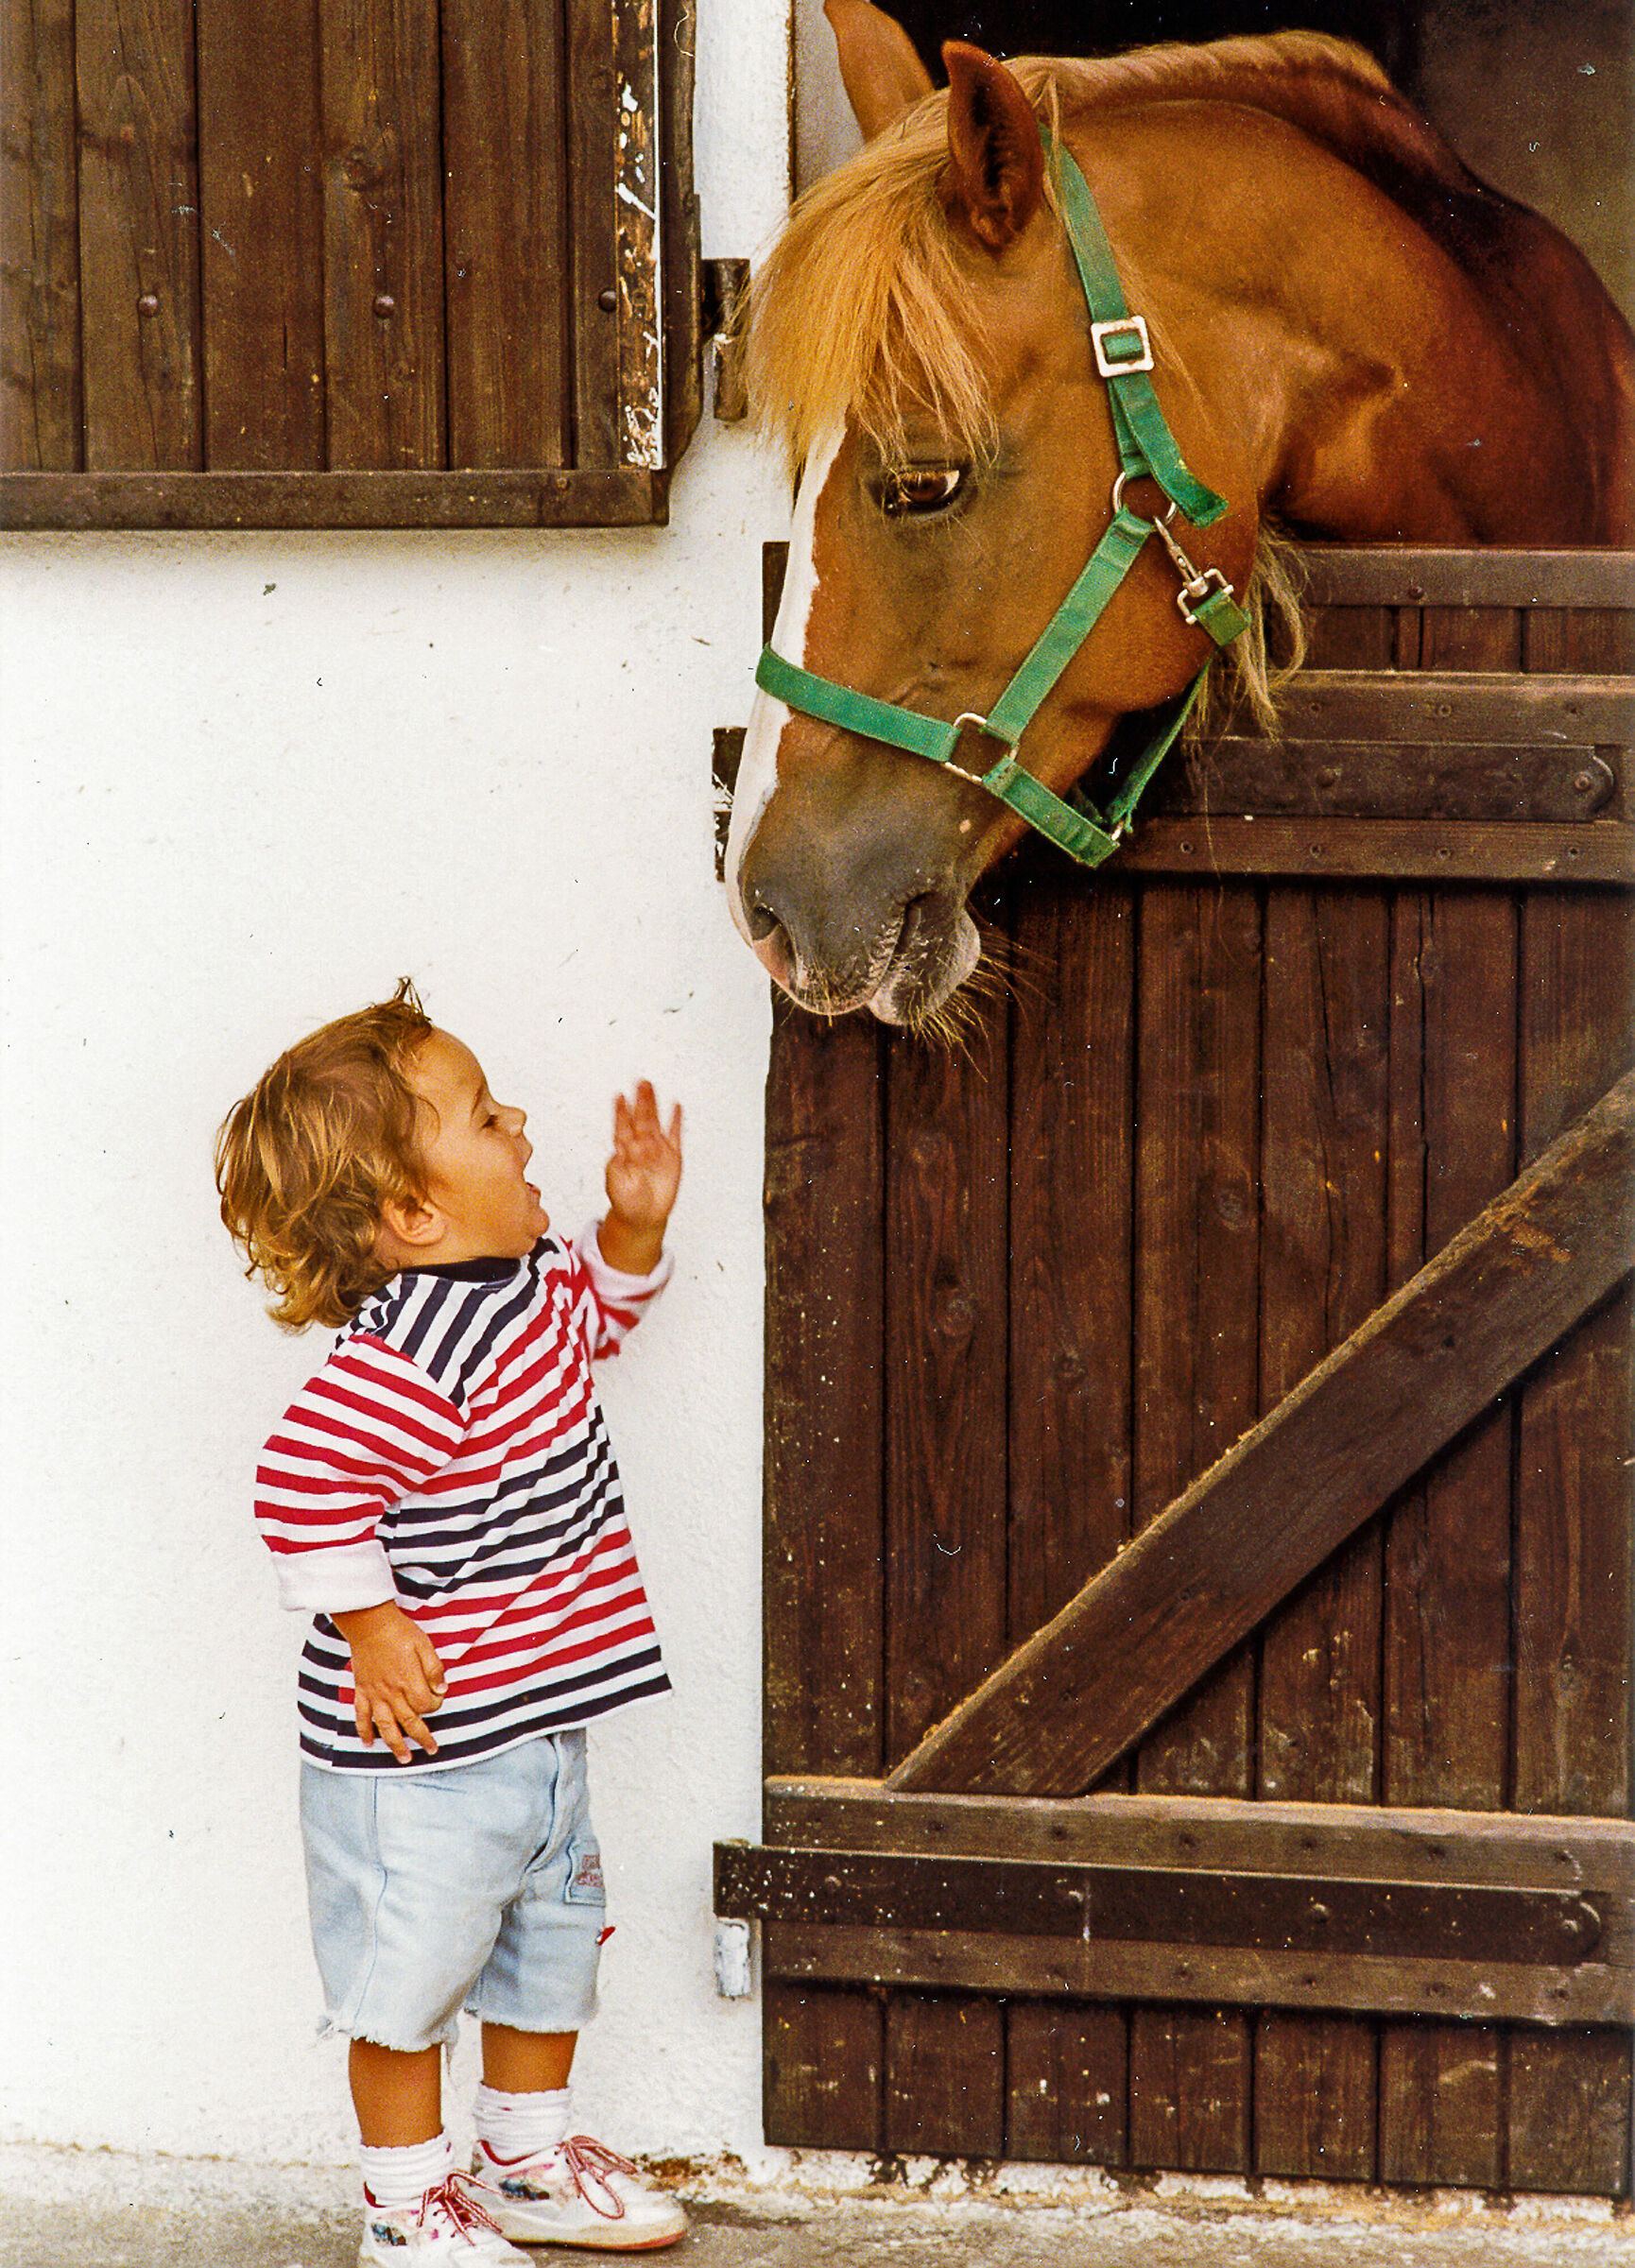 Alexander and the Horse...